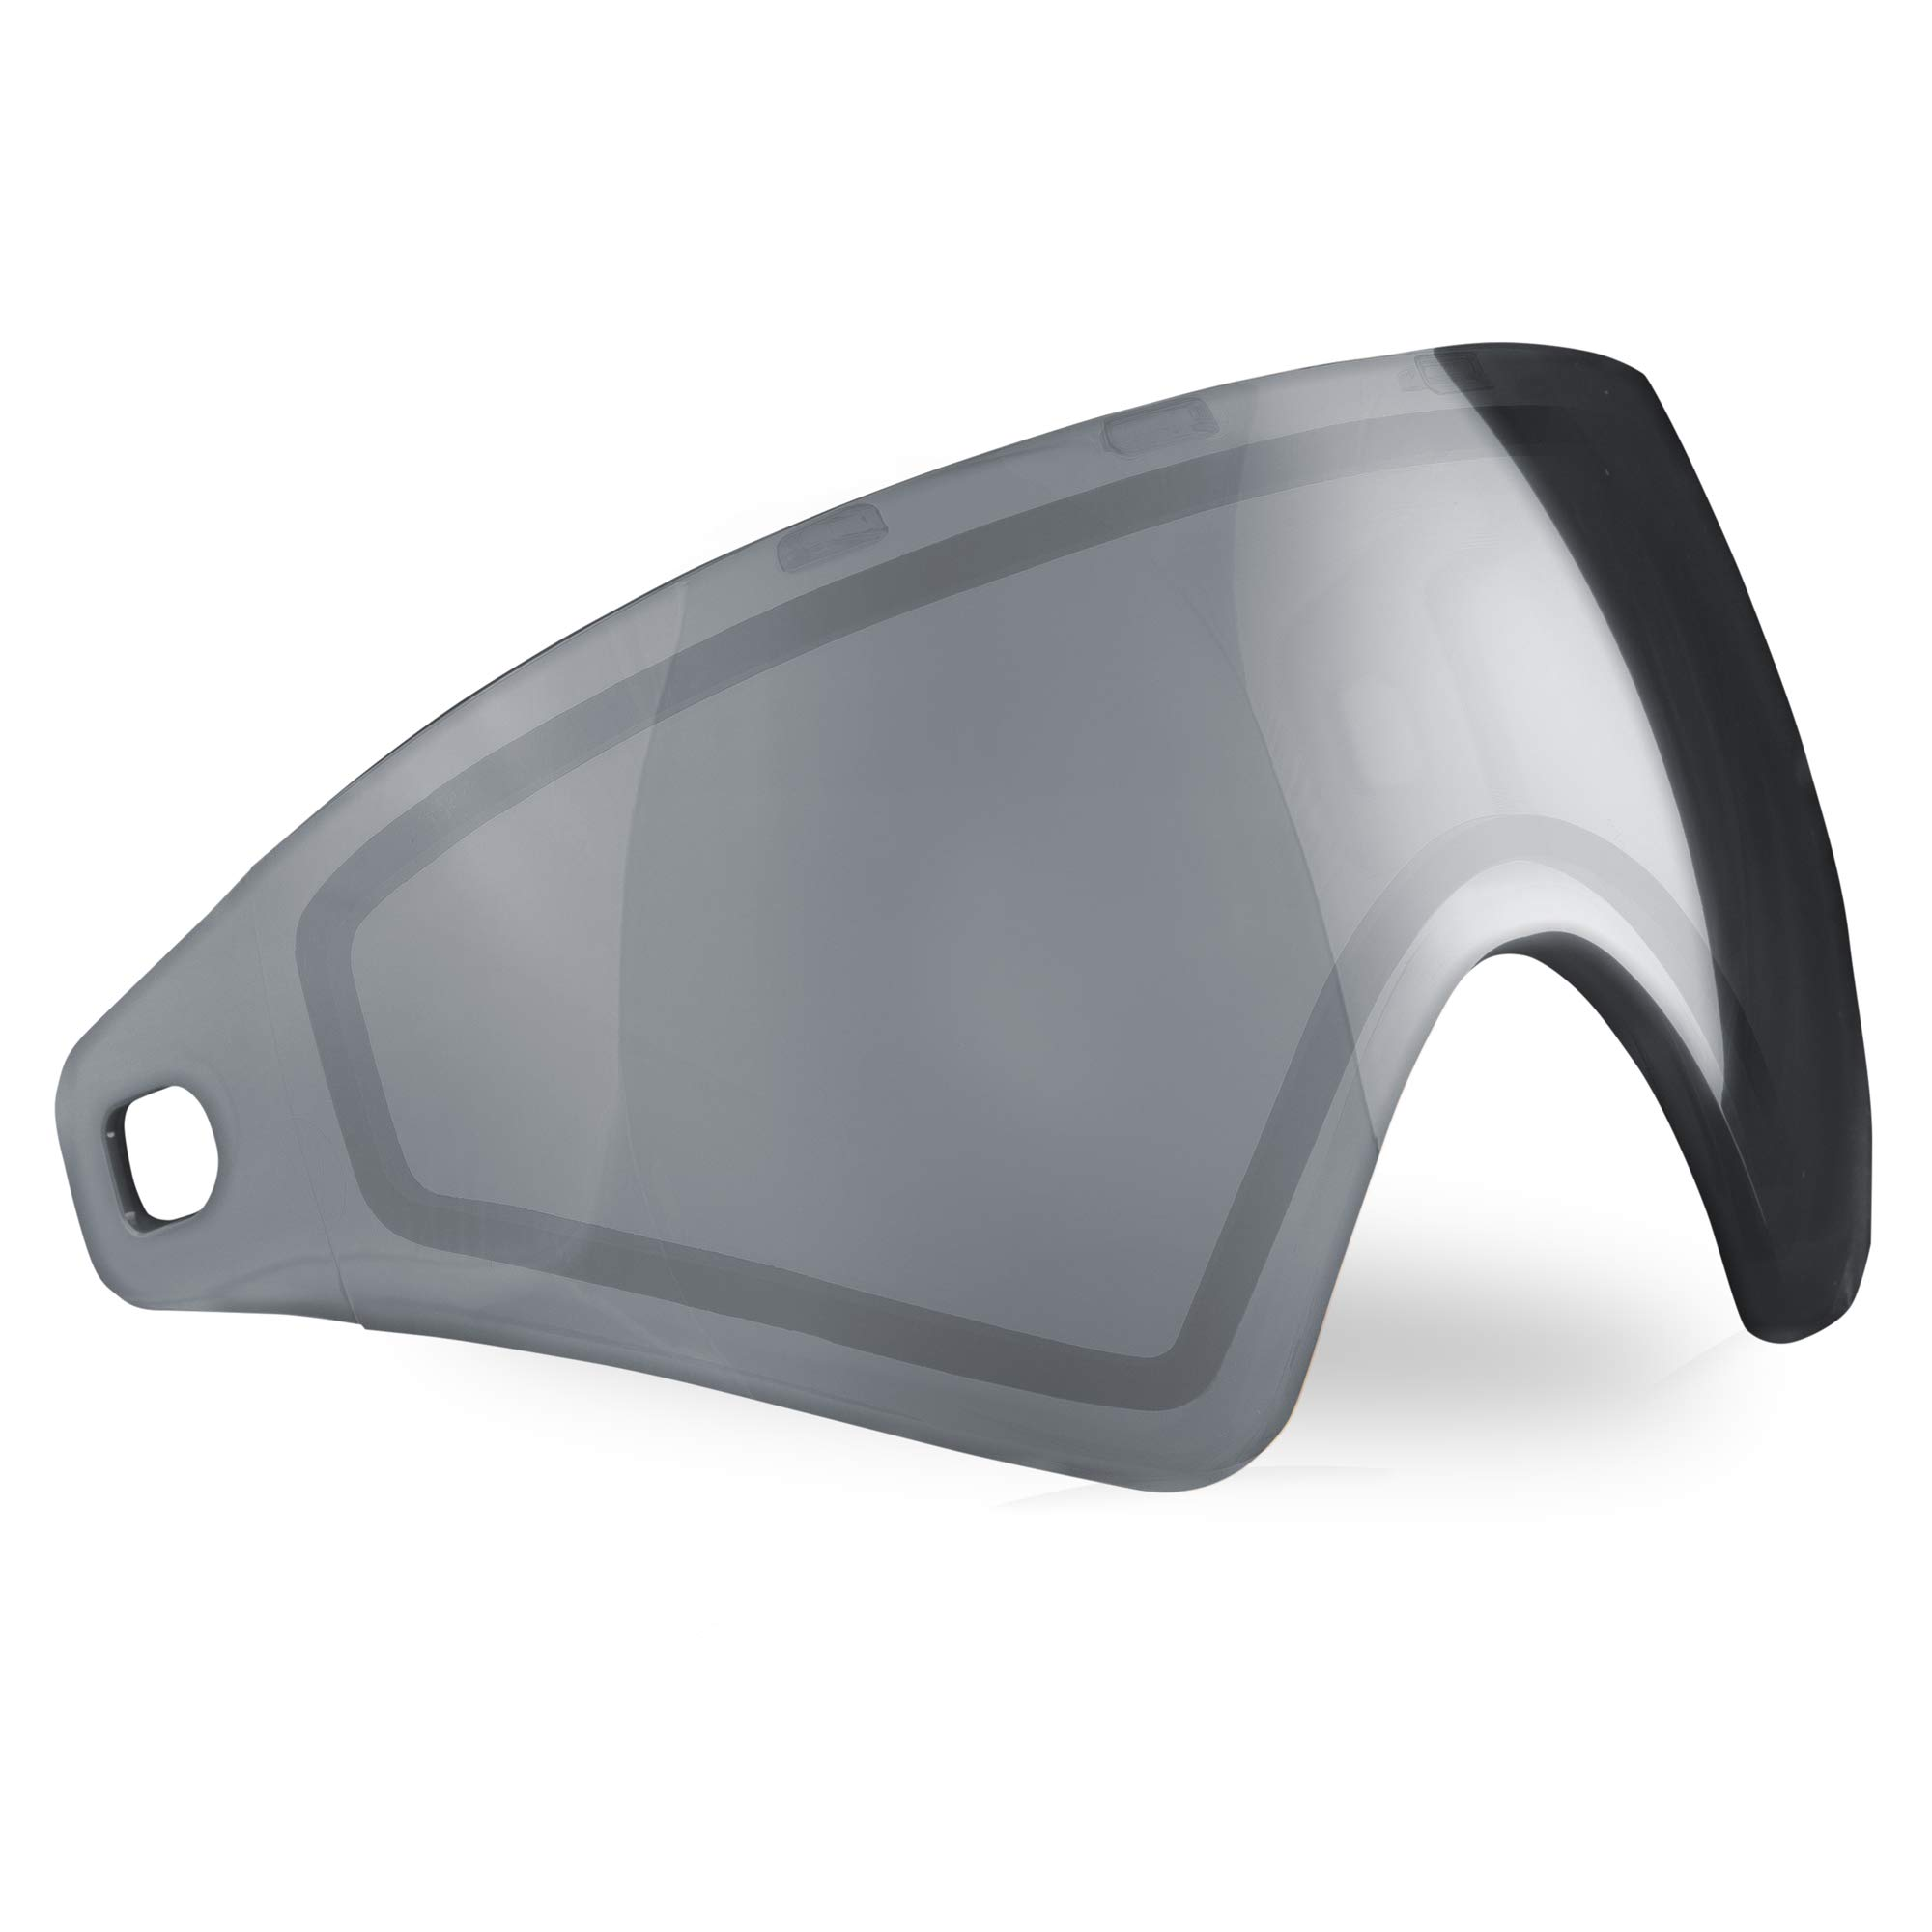 Virtue VIO Replacement Paintball Goggle Lens - Fits Ascend/Contour/Extend and XS Masks - Thermal Bright Mirror by Virtue Paintball